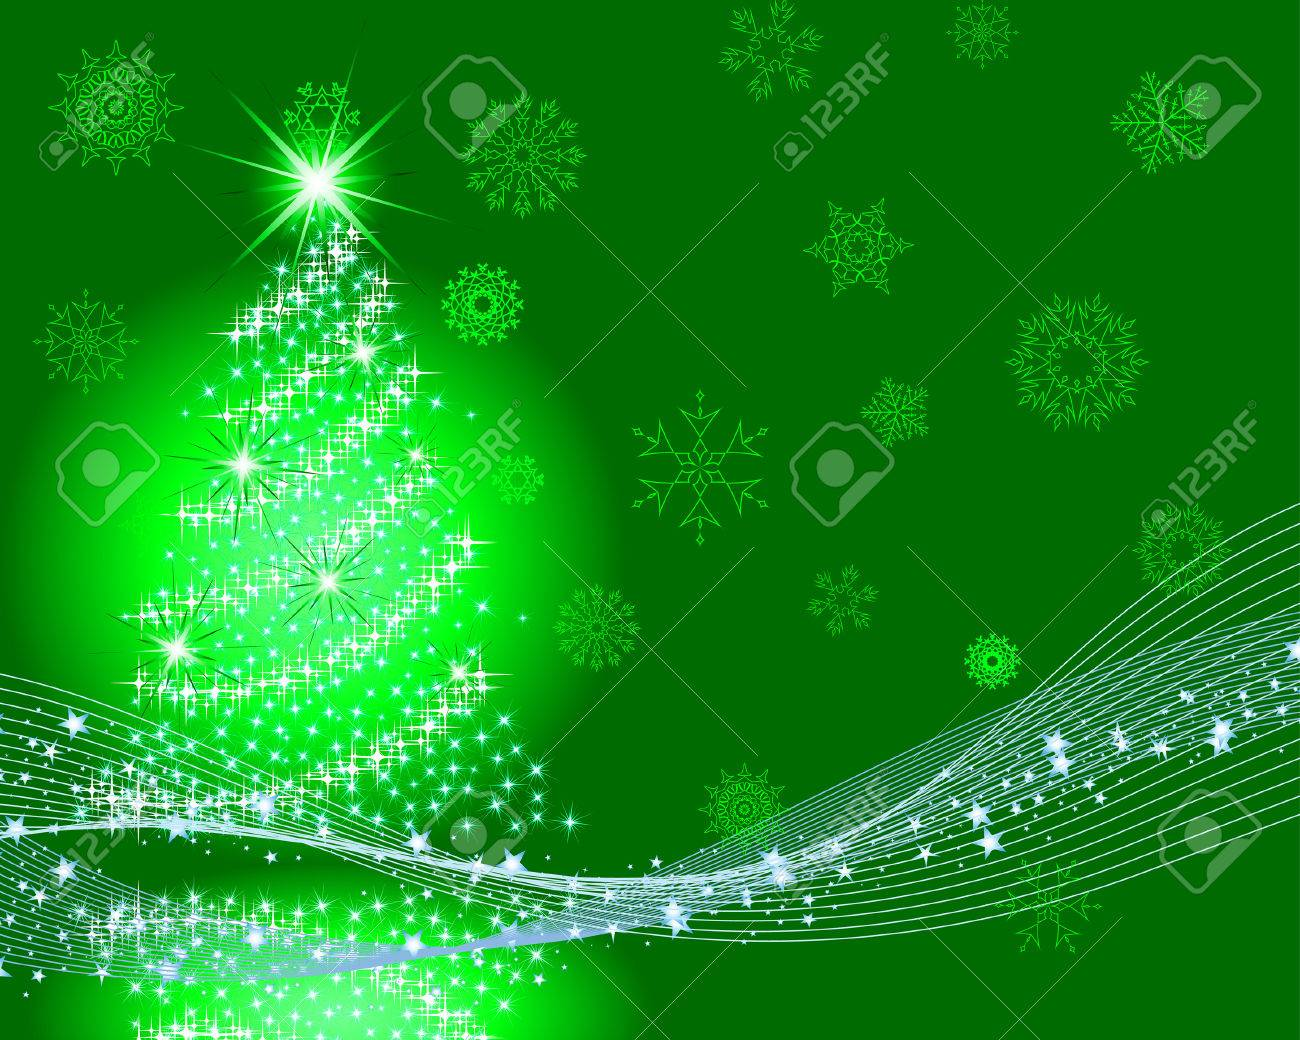 Beautiful vector christmas new year background for design use - Beautiful Vector Christmas New Year Background For Design Use Stock Vector 6052318